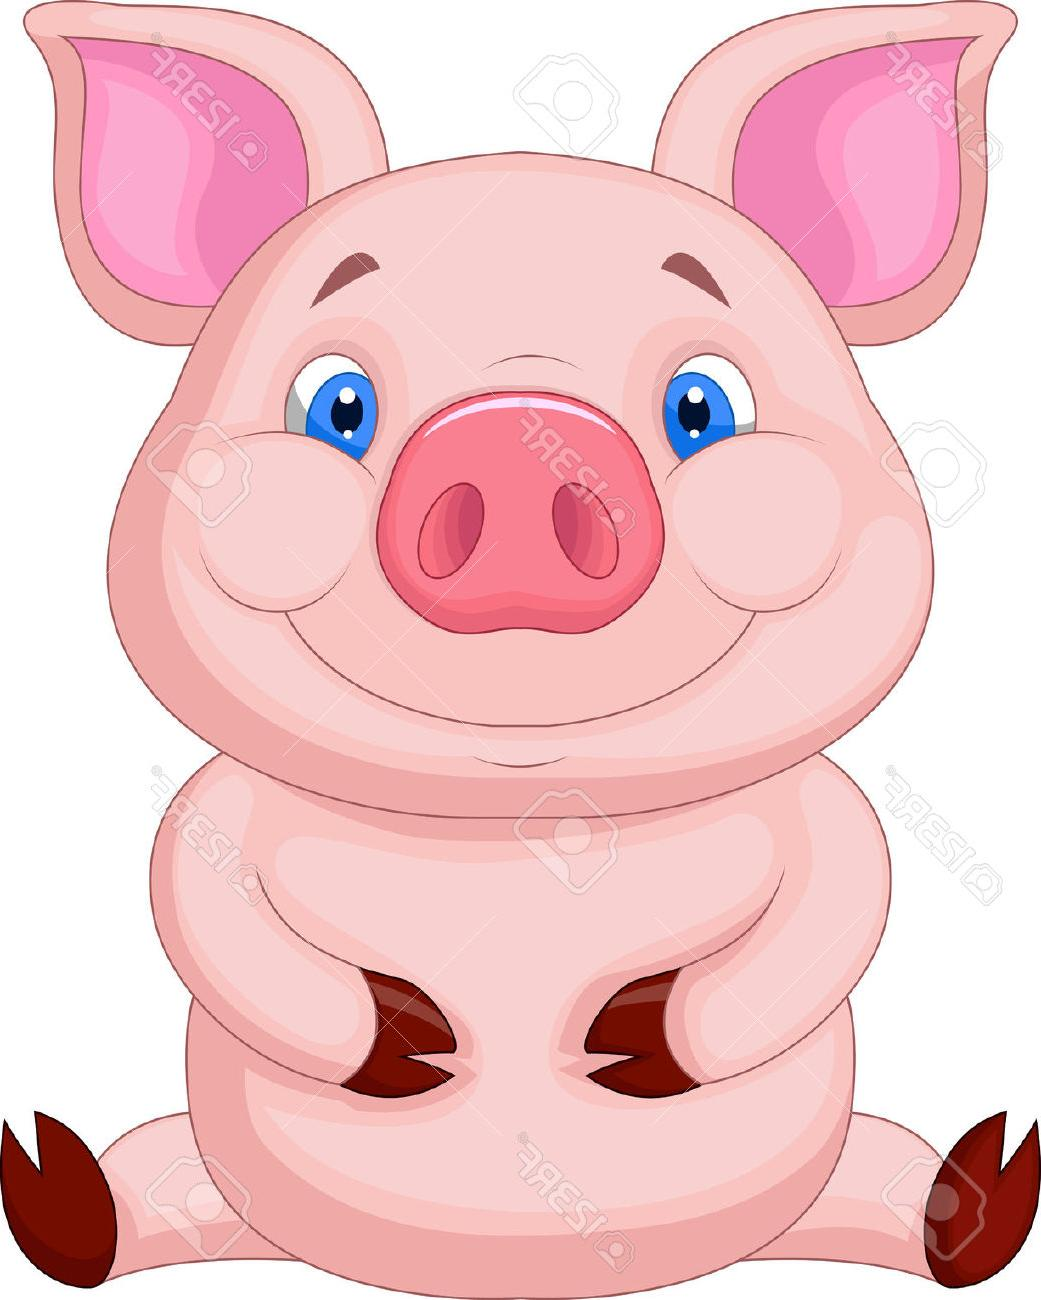 1041x1300 Unique Cute Baby Pig Cartoon Sitting Stock Vector Drawing